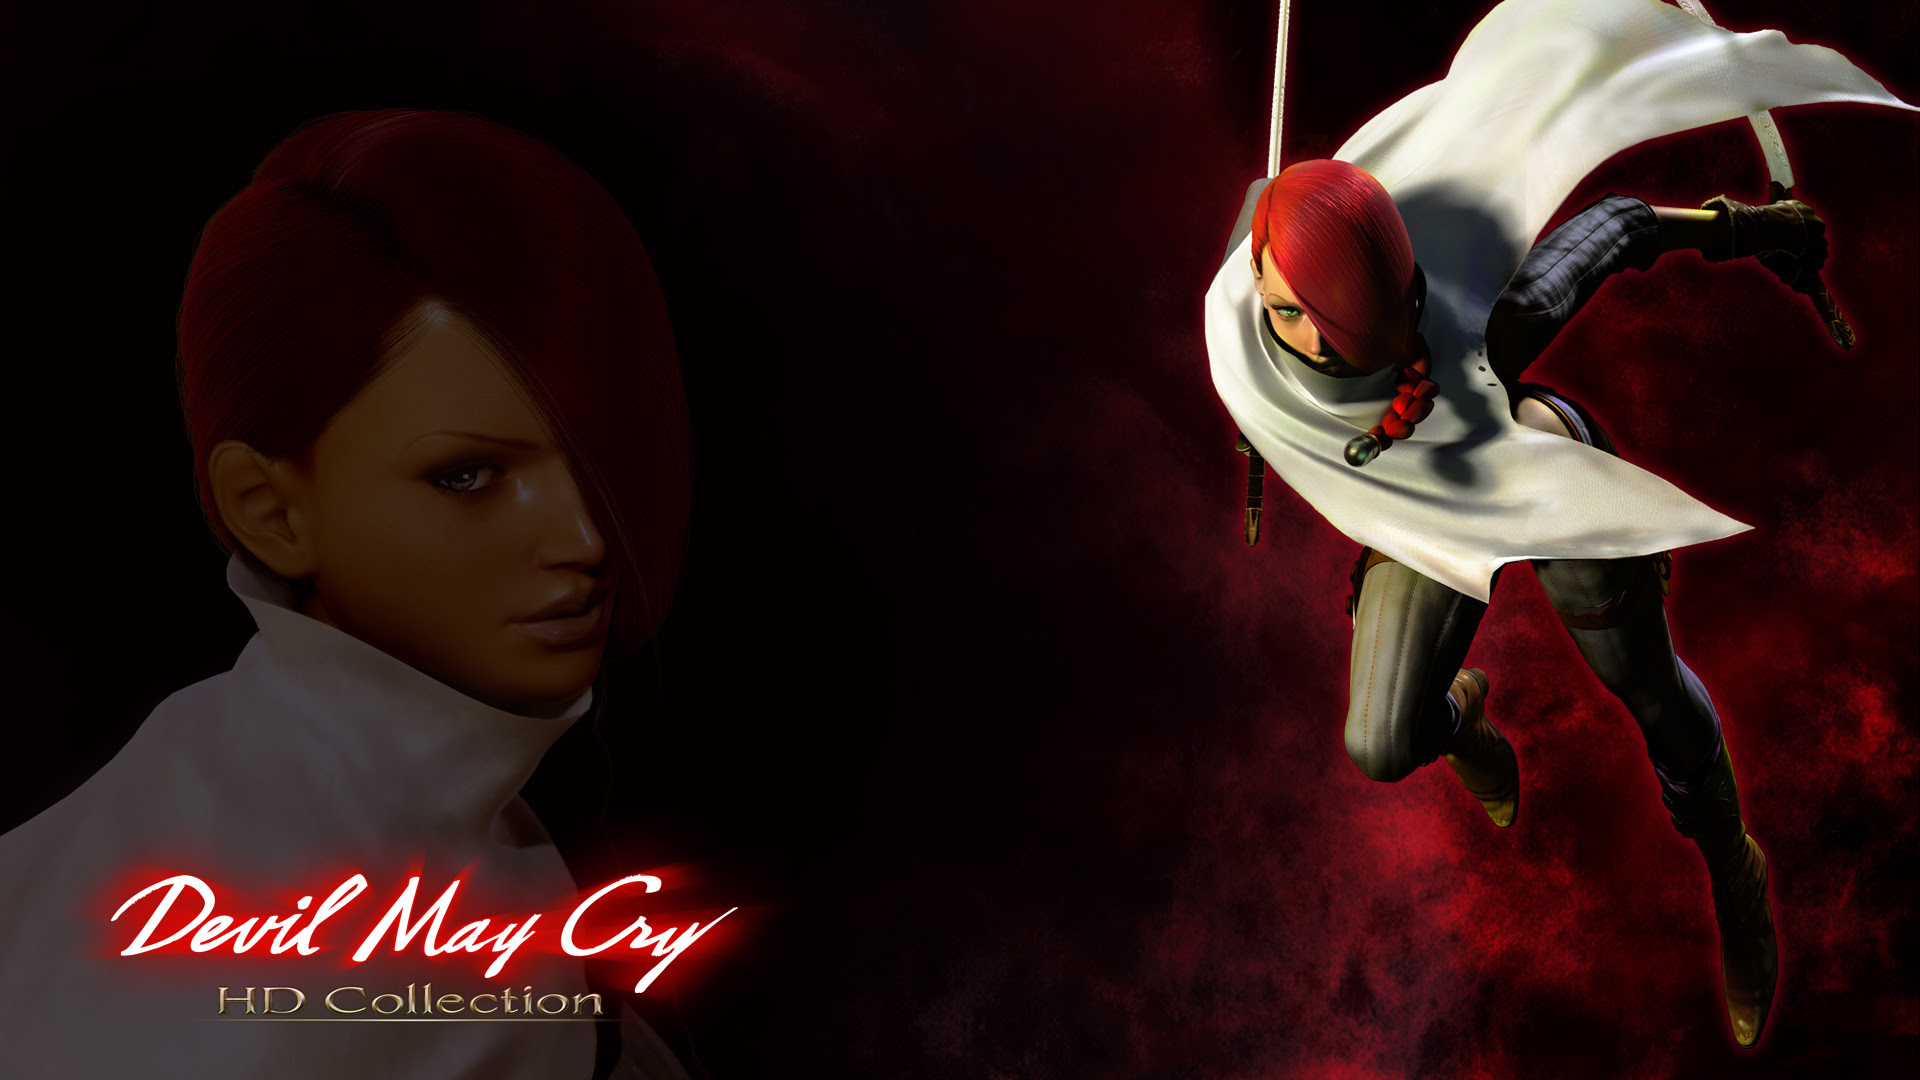 Dmc Lucia Devil May Cry Wallpaper 42706016 Fanpop